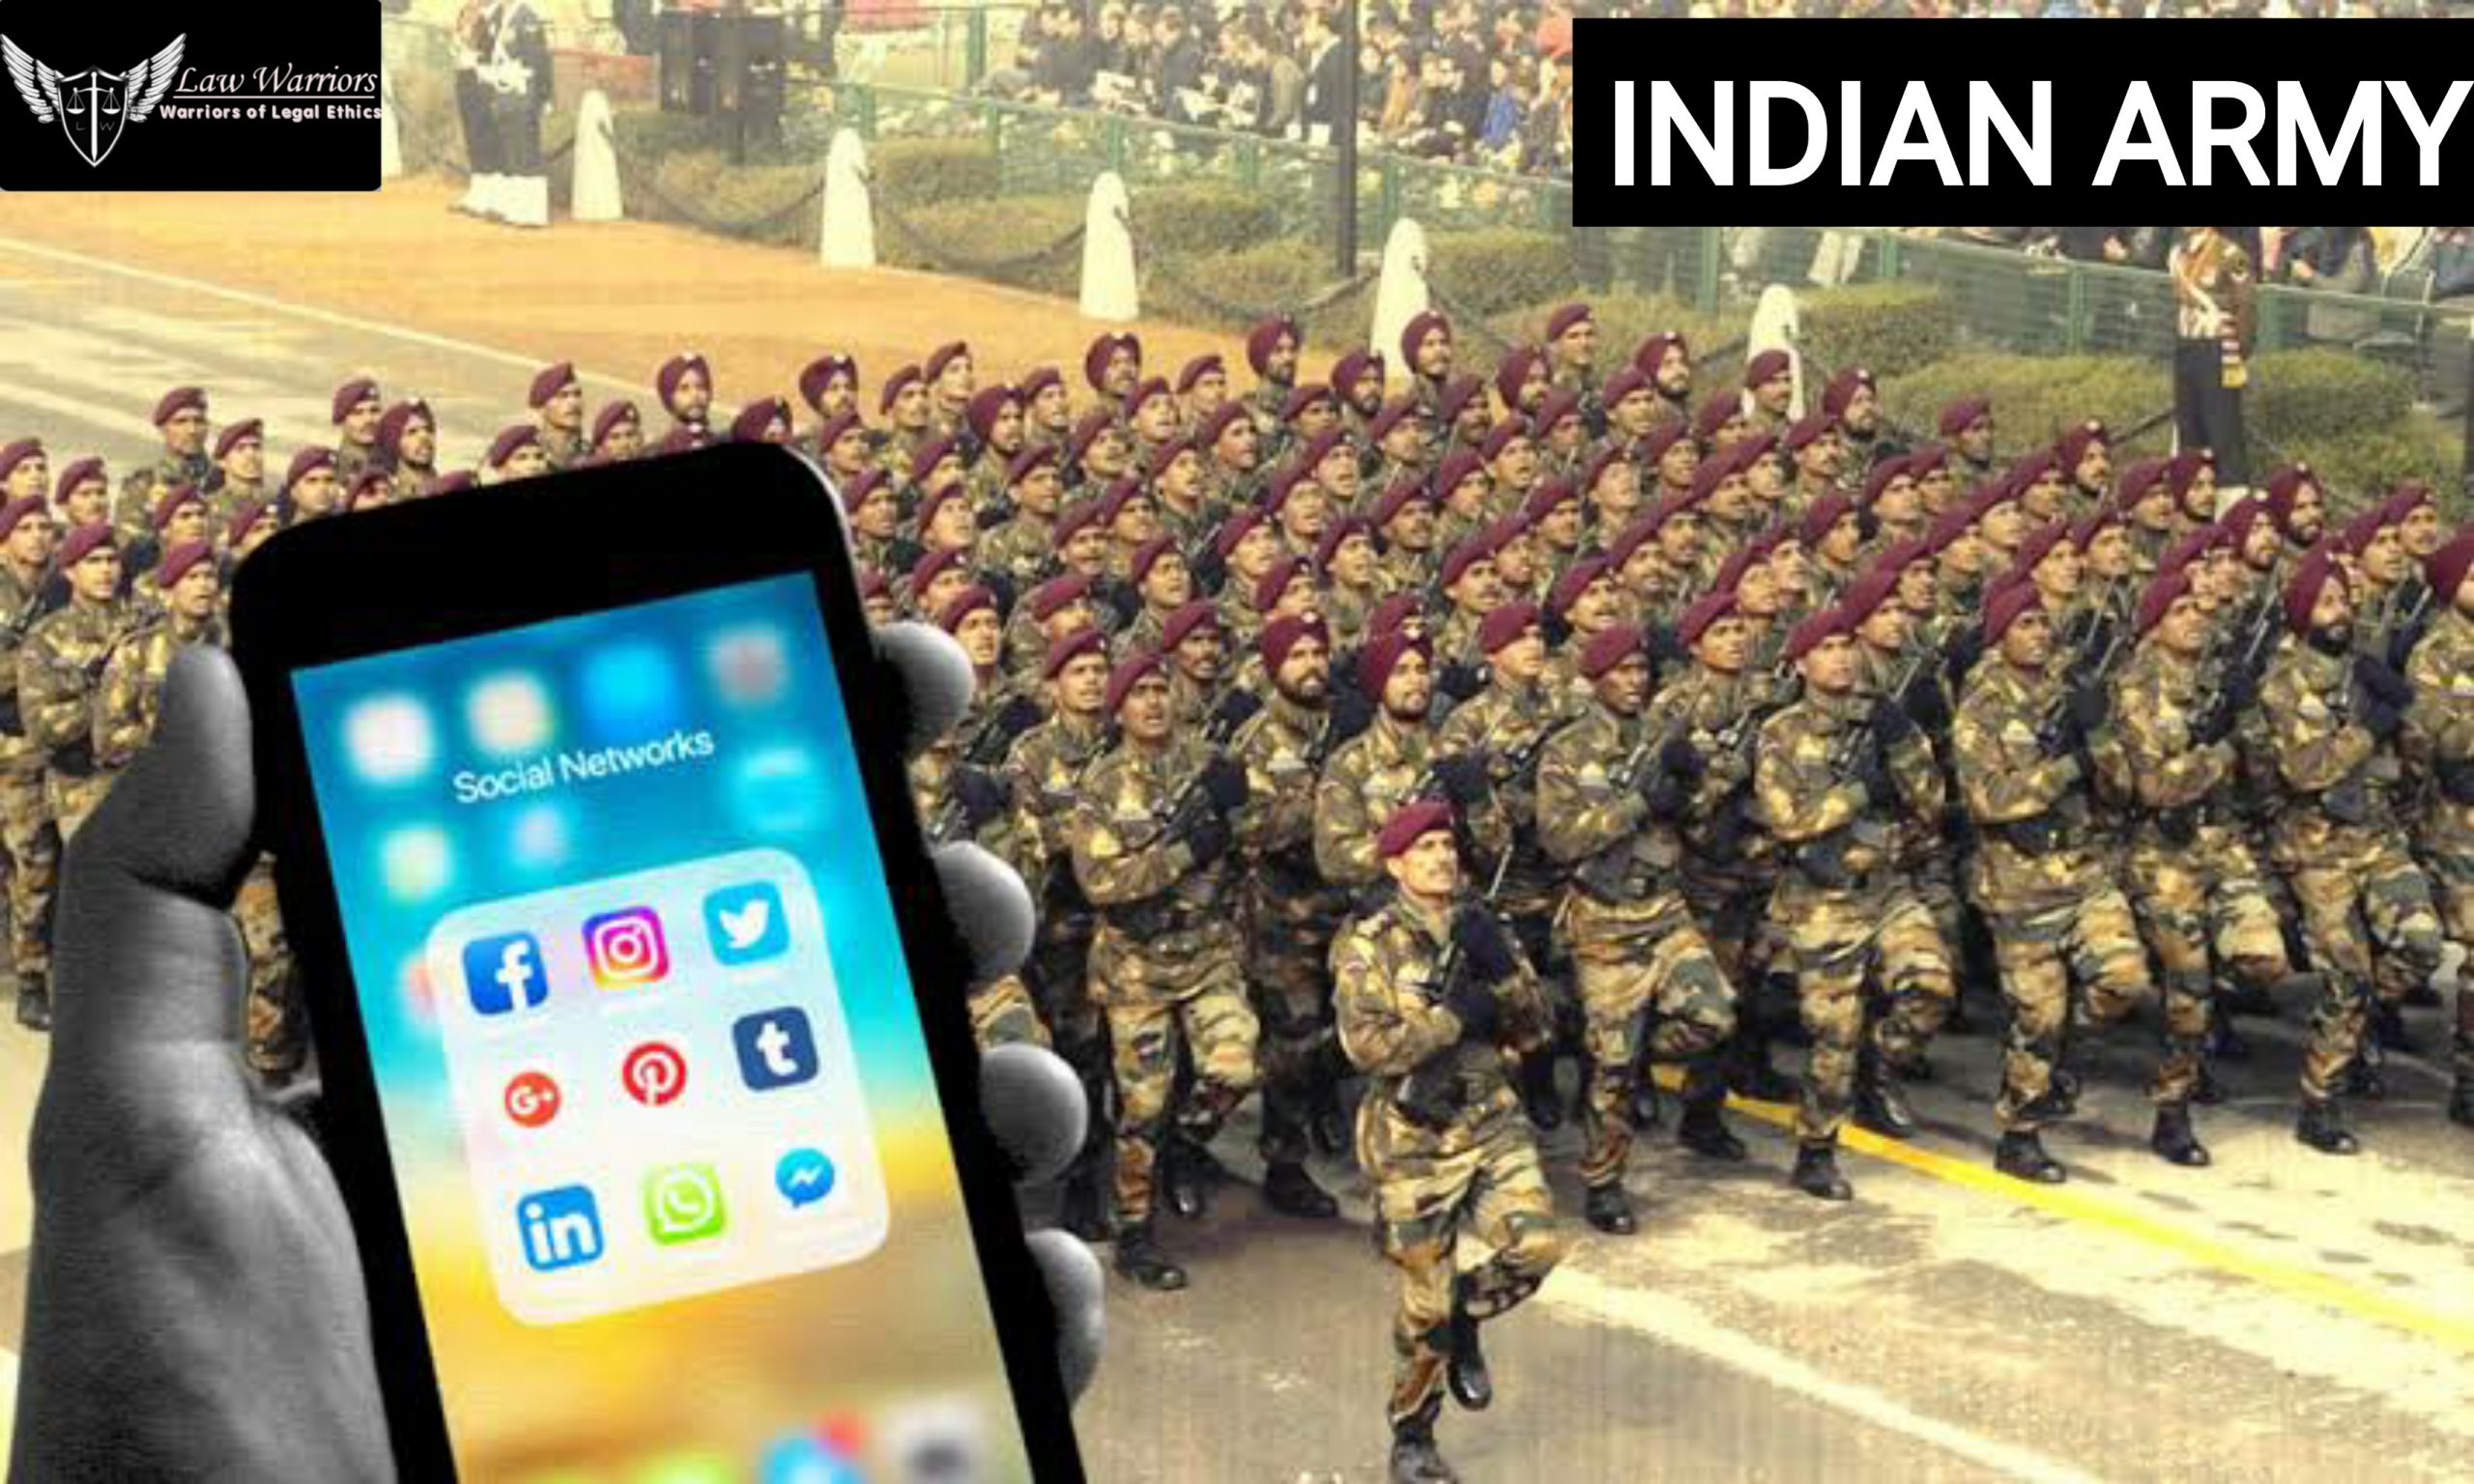 Delhi High court has asked the central government for the submission of the policy regarding the ban of social media in the armed forces.